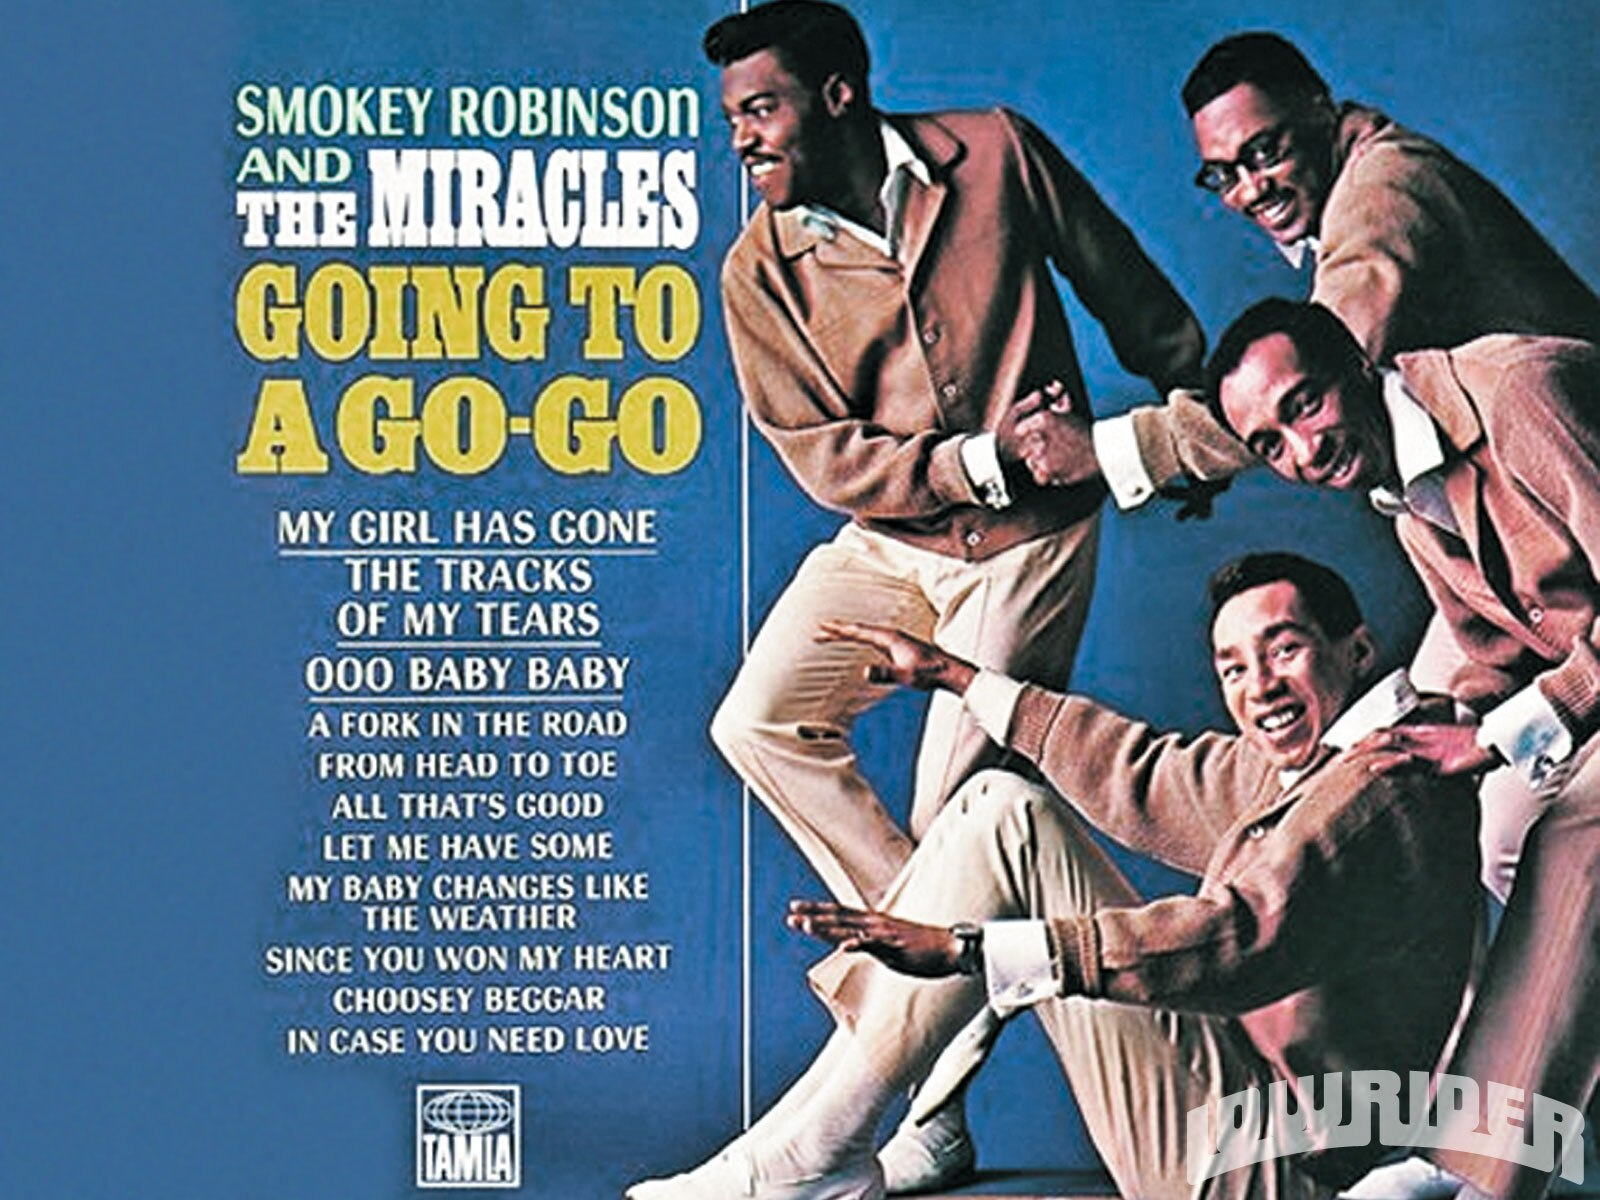 1002_lrmp_02_o-william_smokey_robinson_motown_records-going_to_a_go_go3